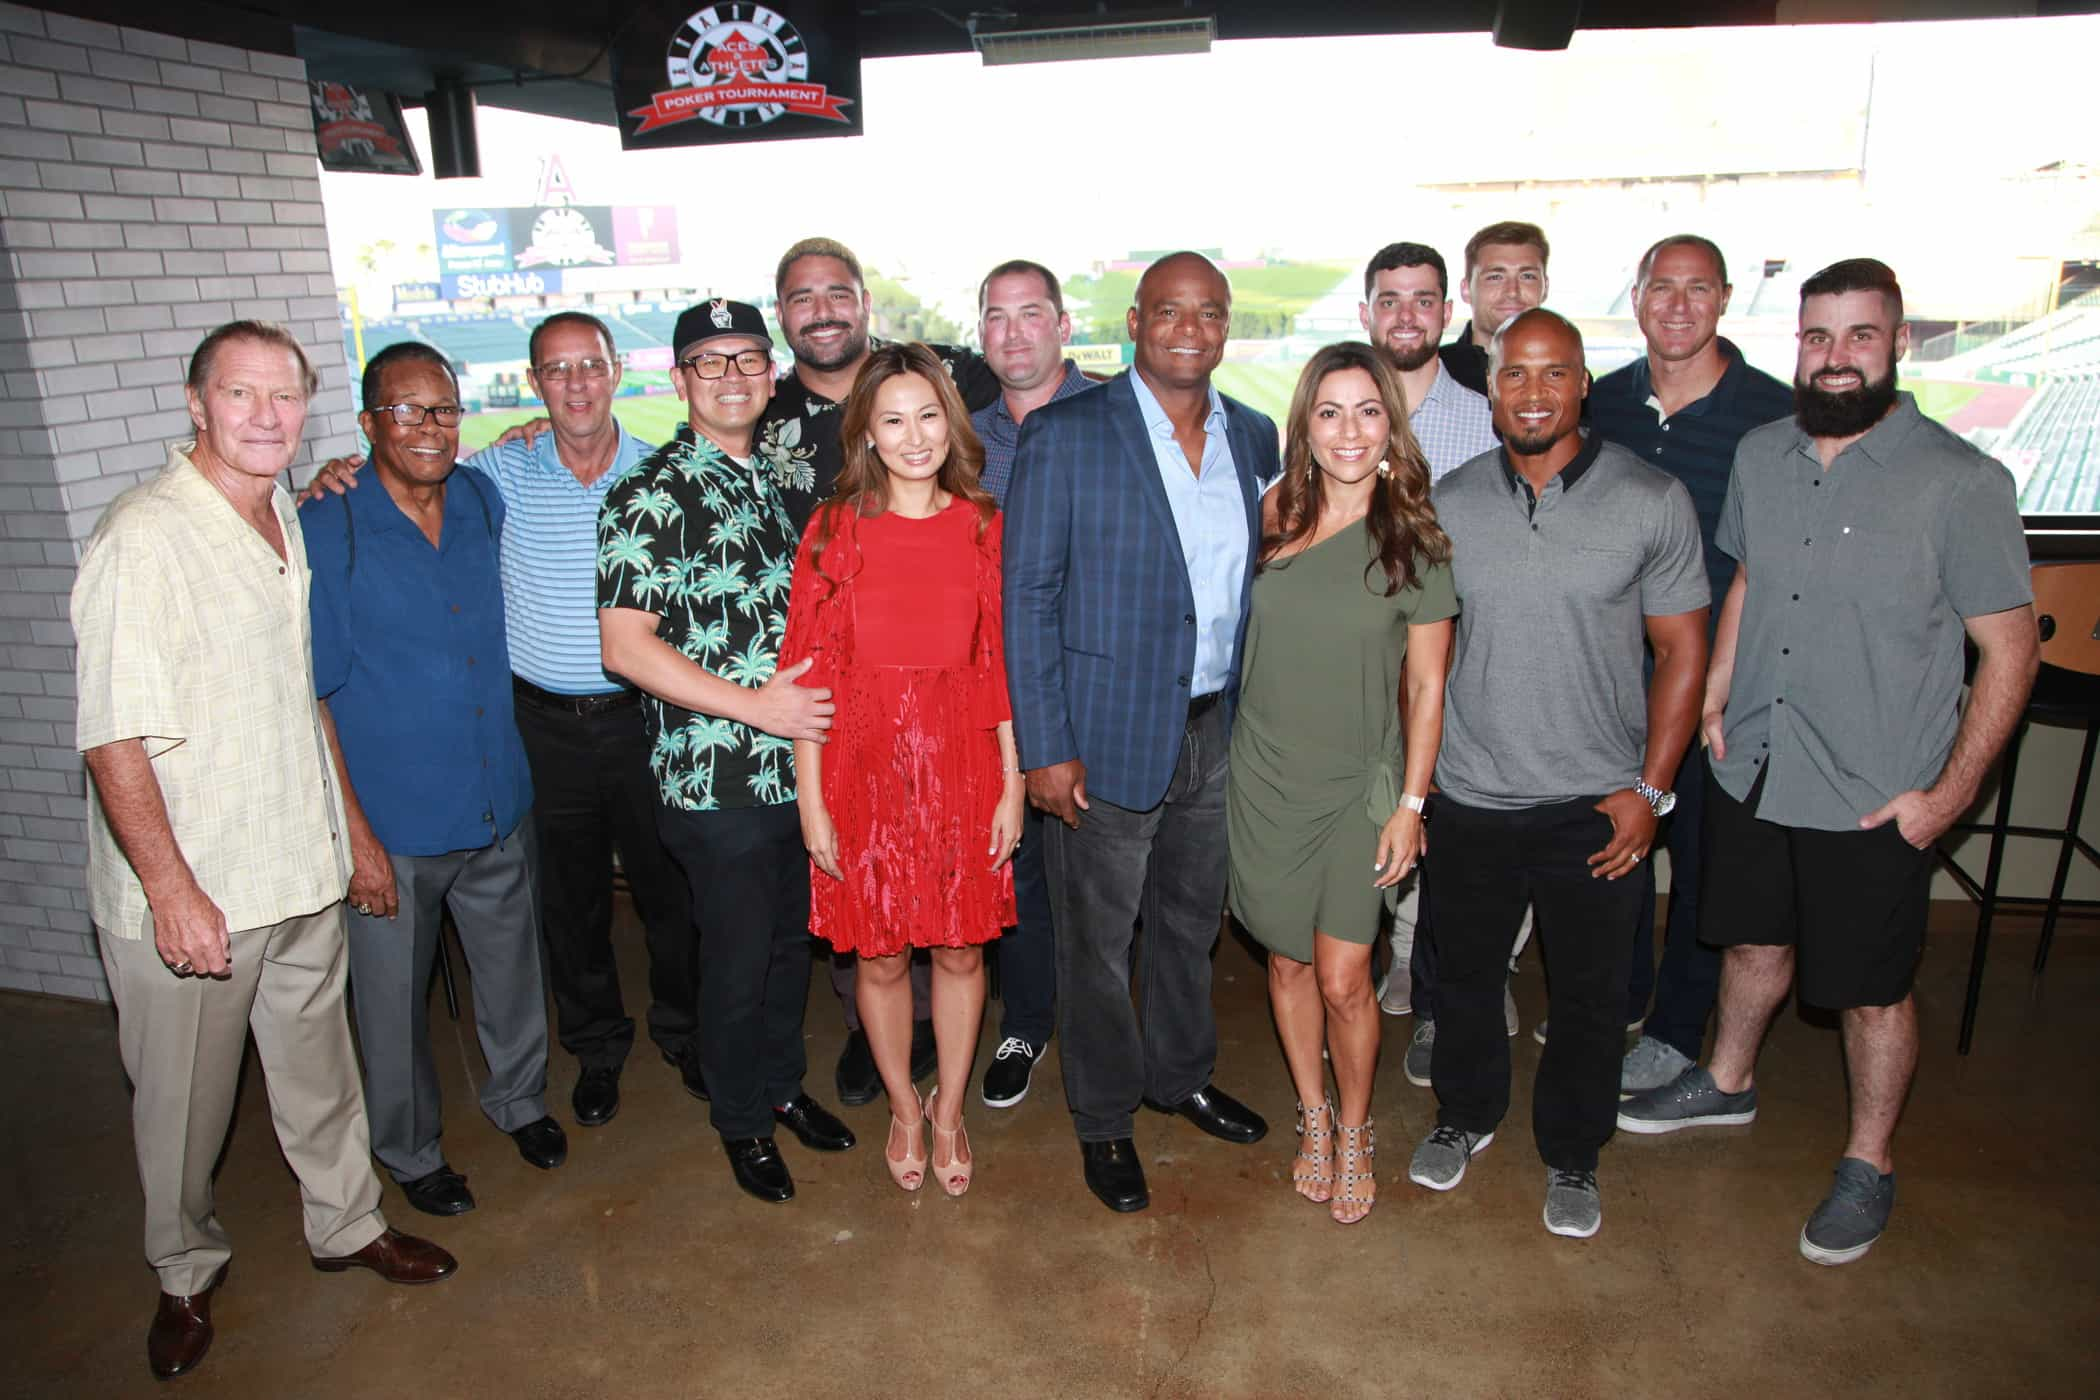 PROFESSIONAL ATHLETES HELP RAISE OVER $50,000 FOR IRVINE SCHOOLS